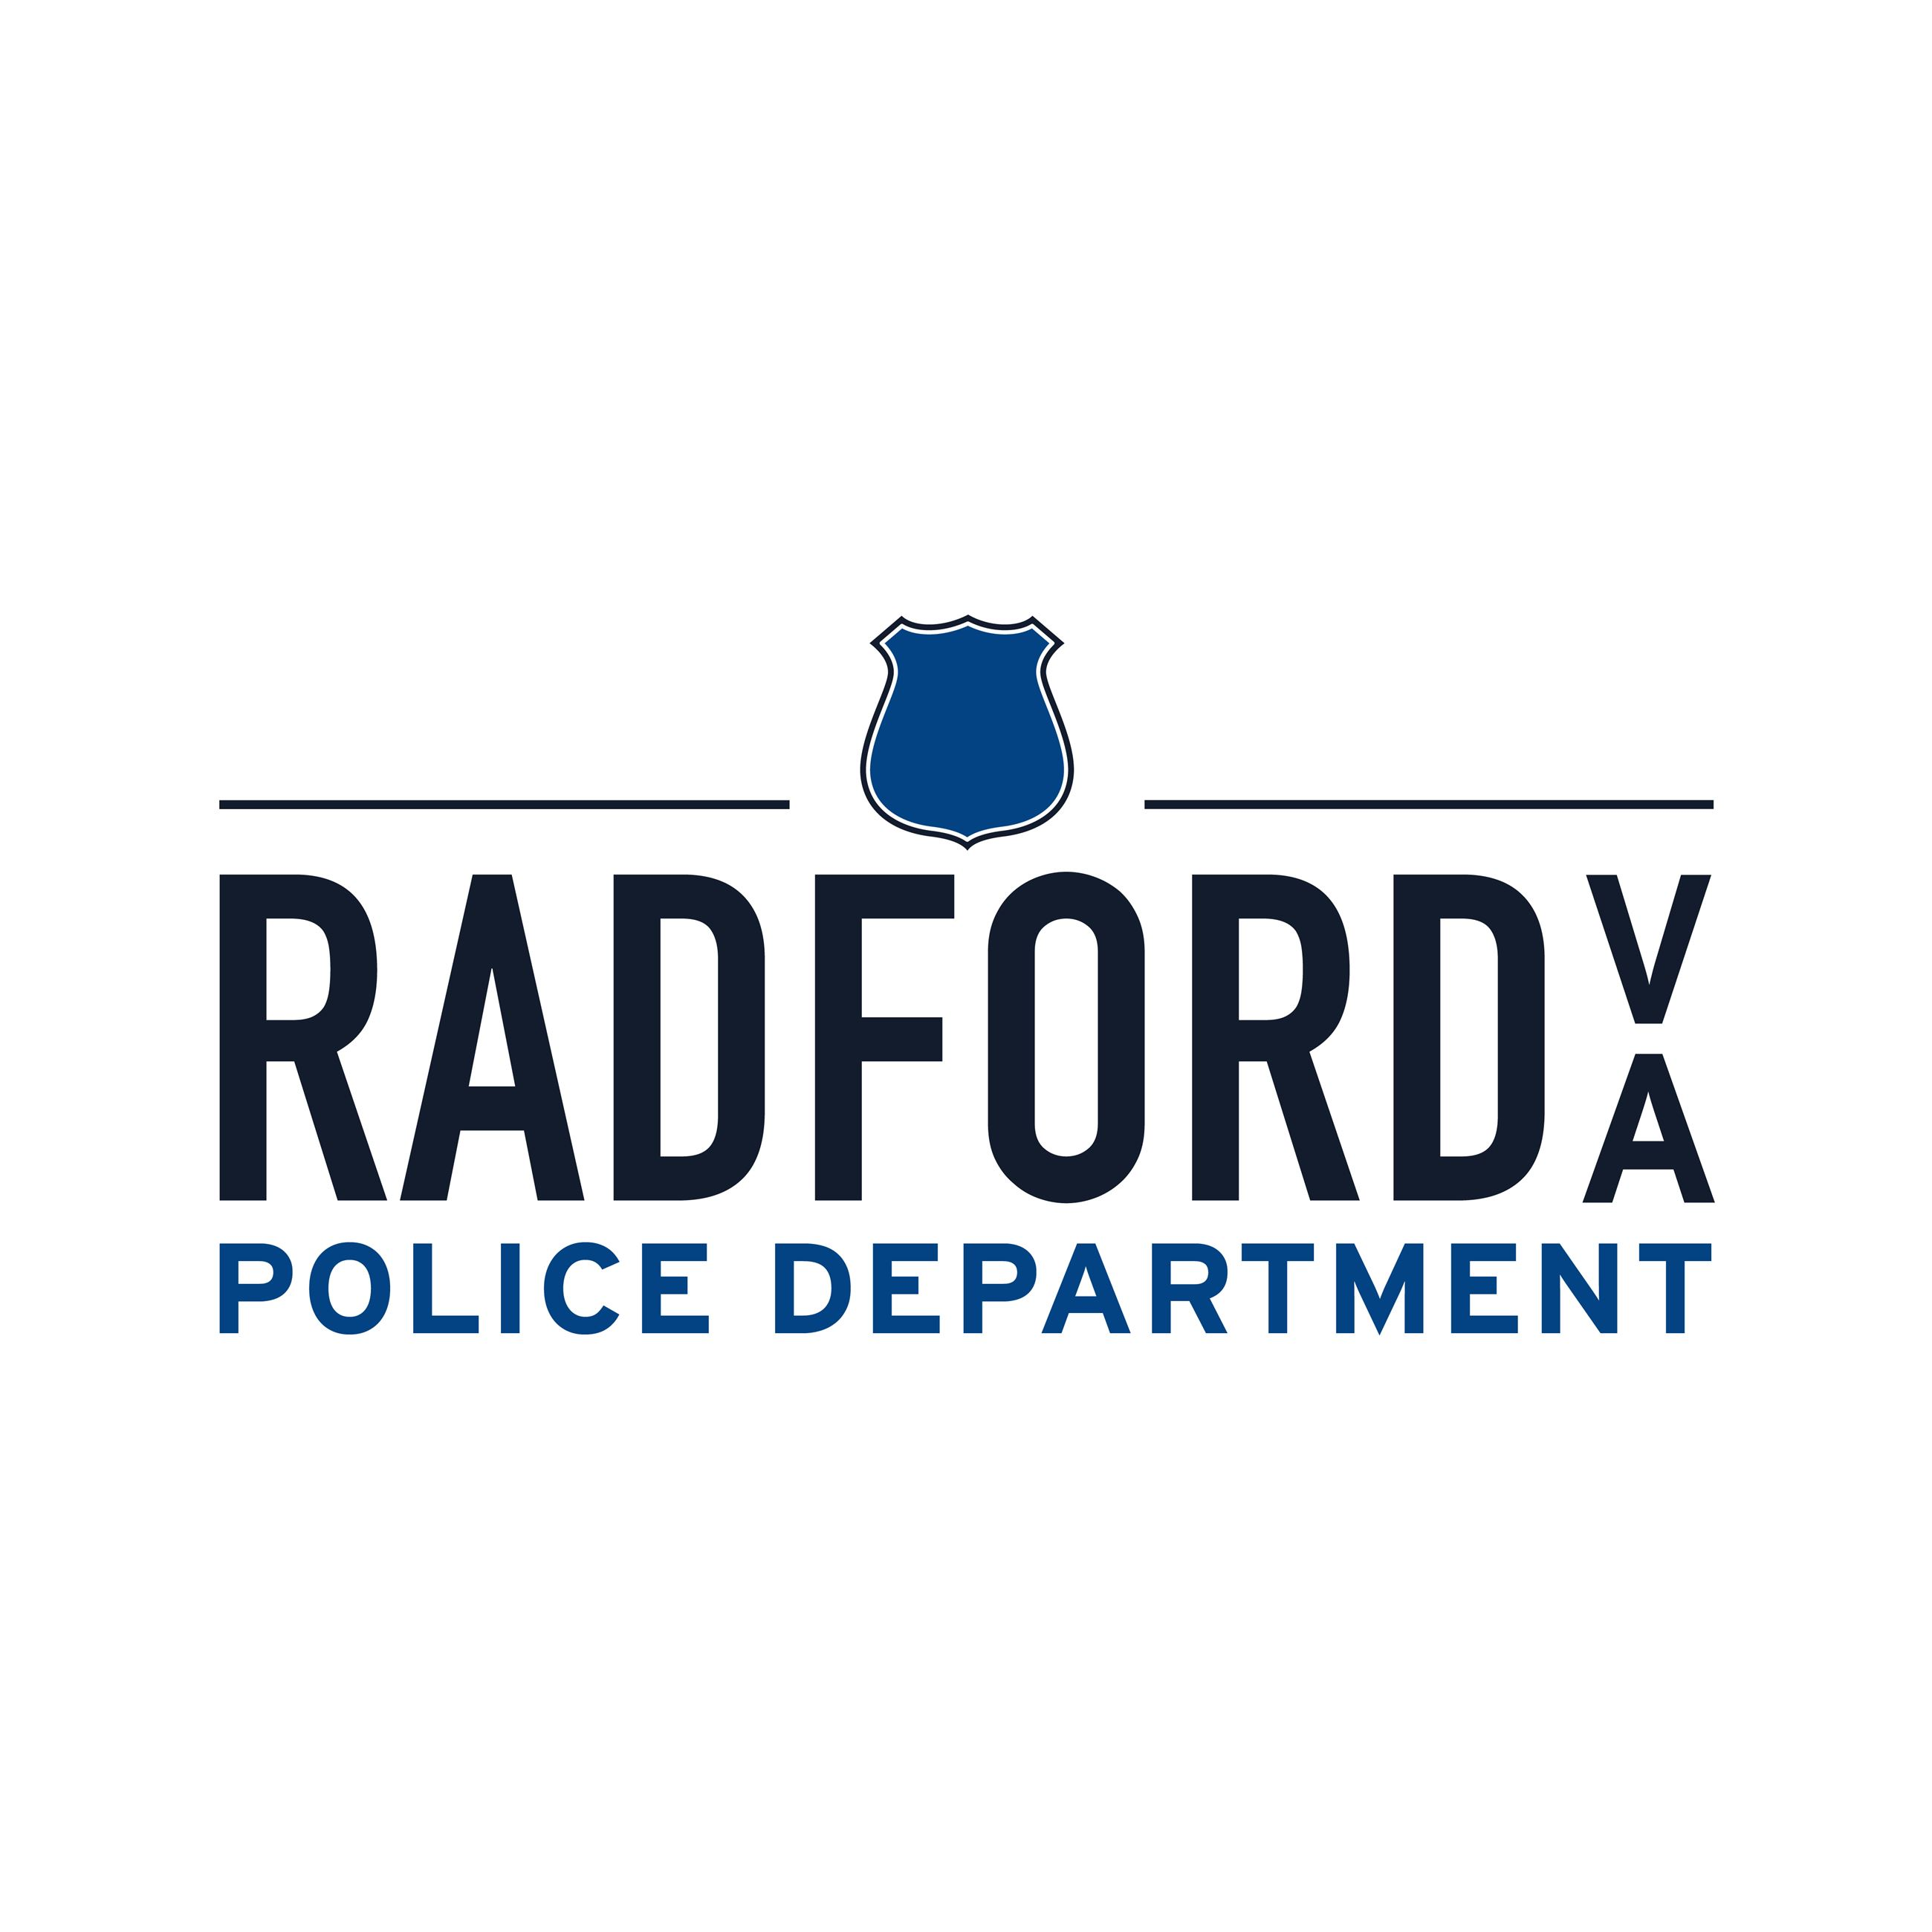 Radford Police Department Main Logo Social